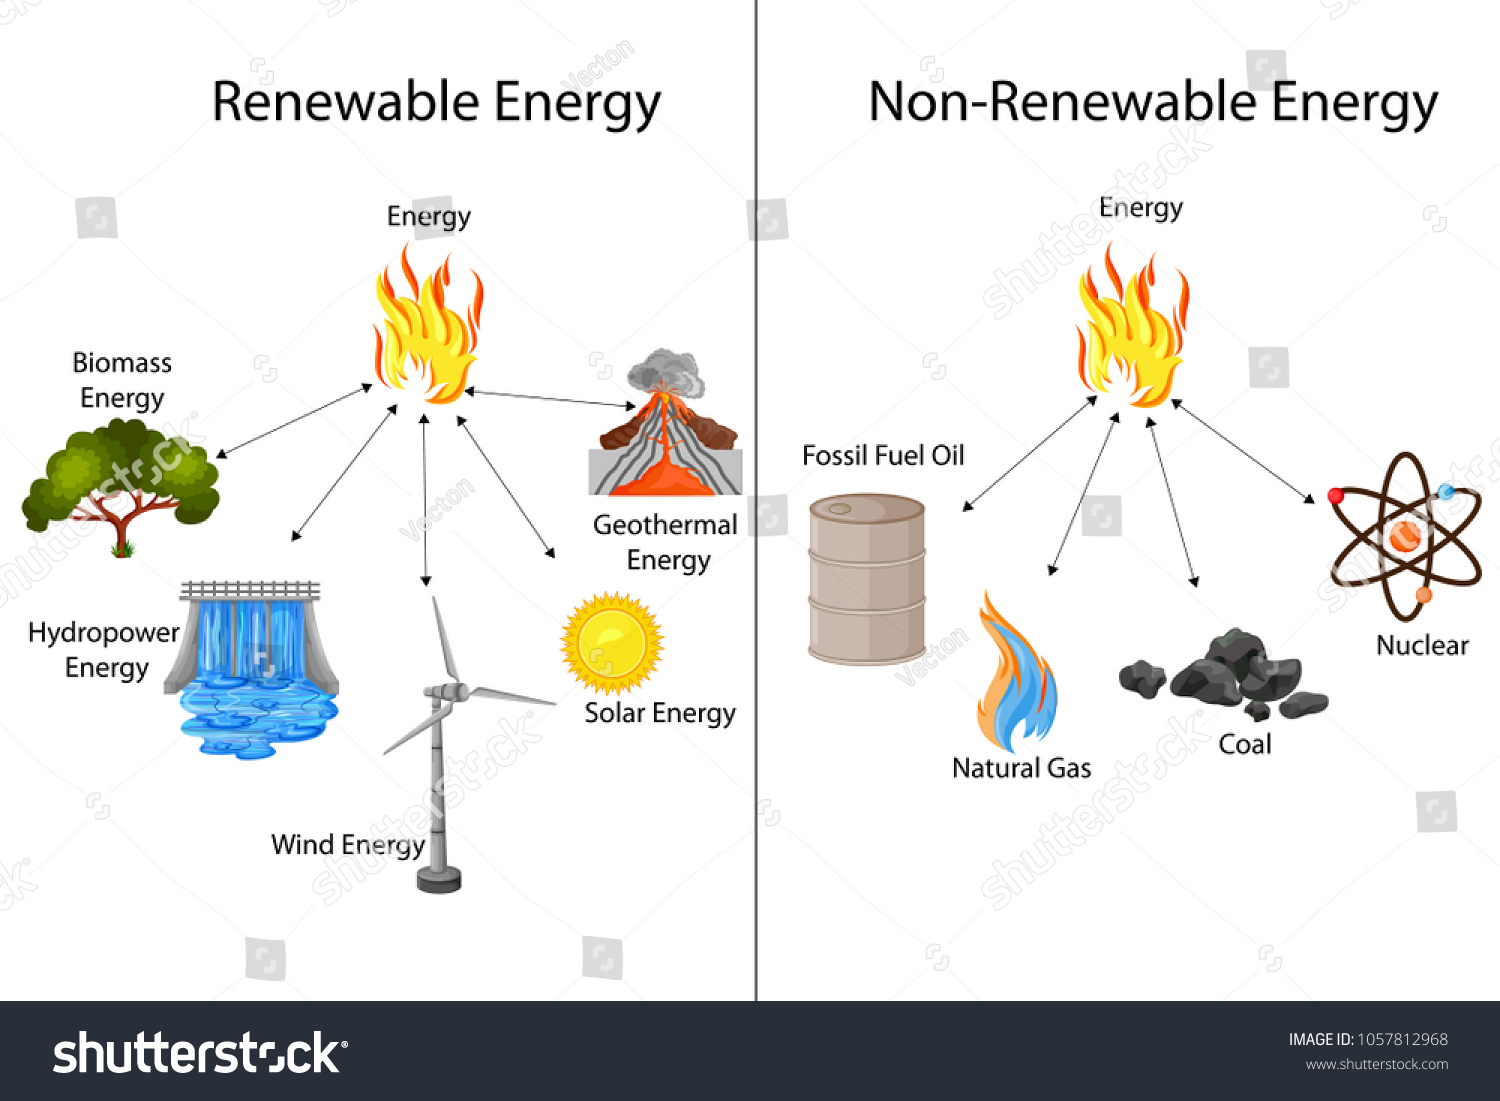 hight resolution of oil energy diagram wiring diagram block diagram of renewable energy sources diagram of pendulum energy